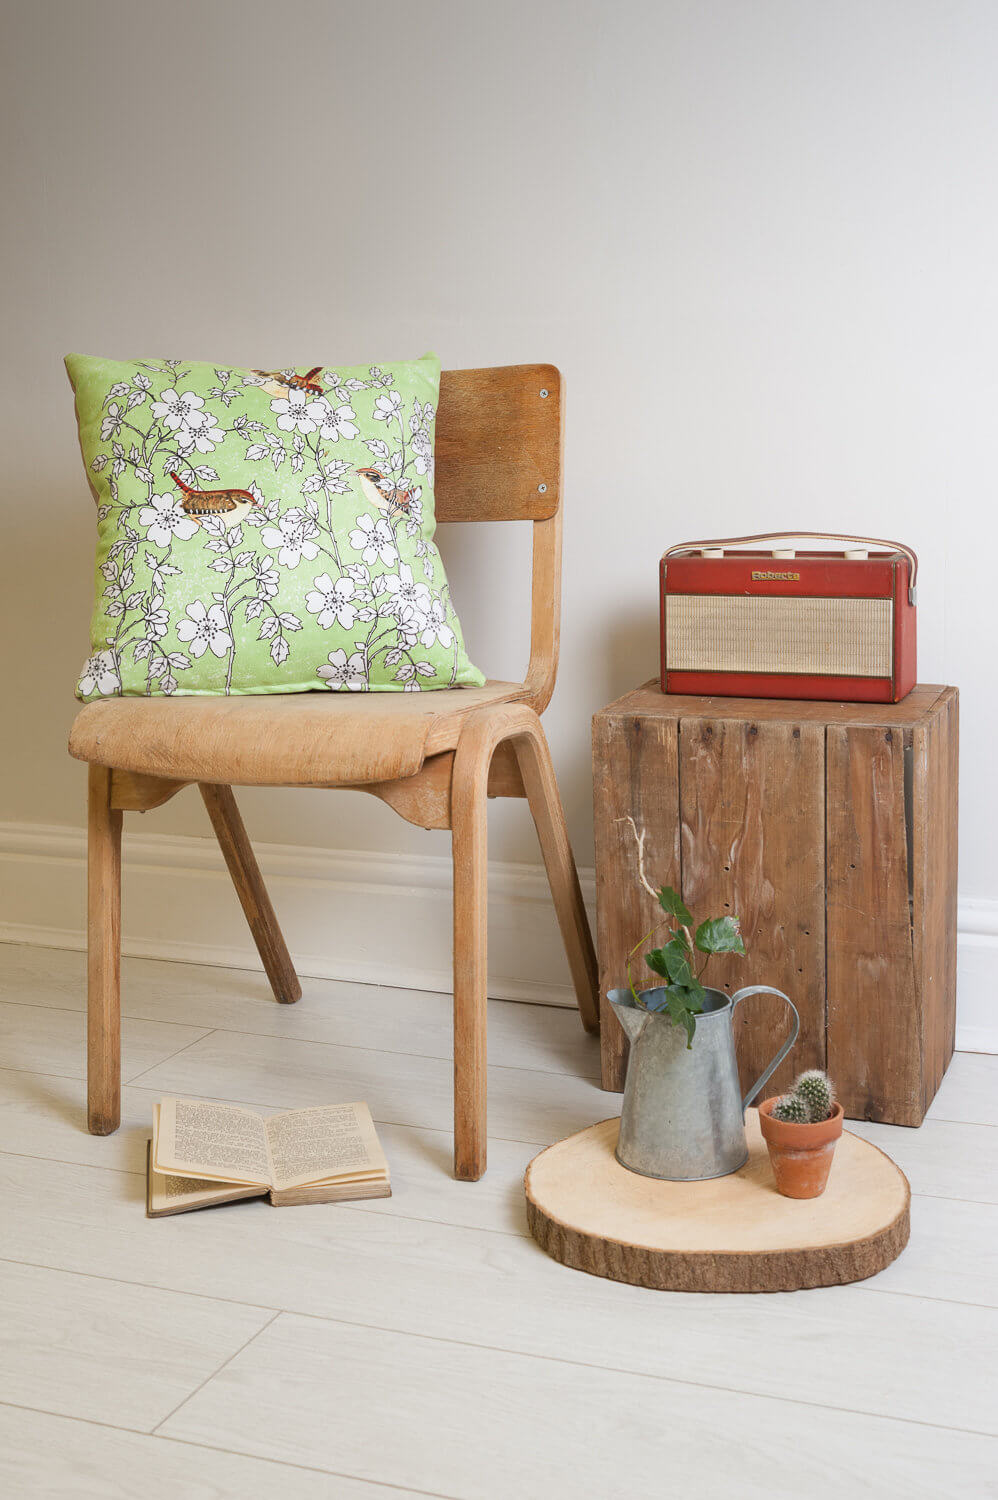 Homewares photography with retro props